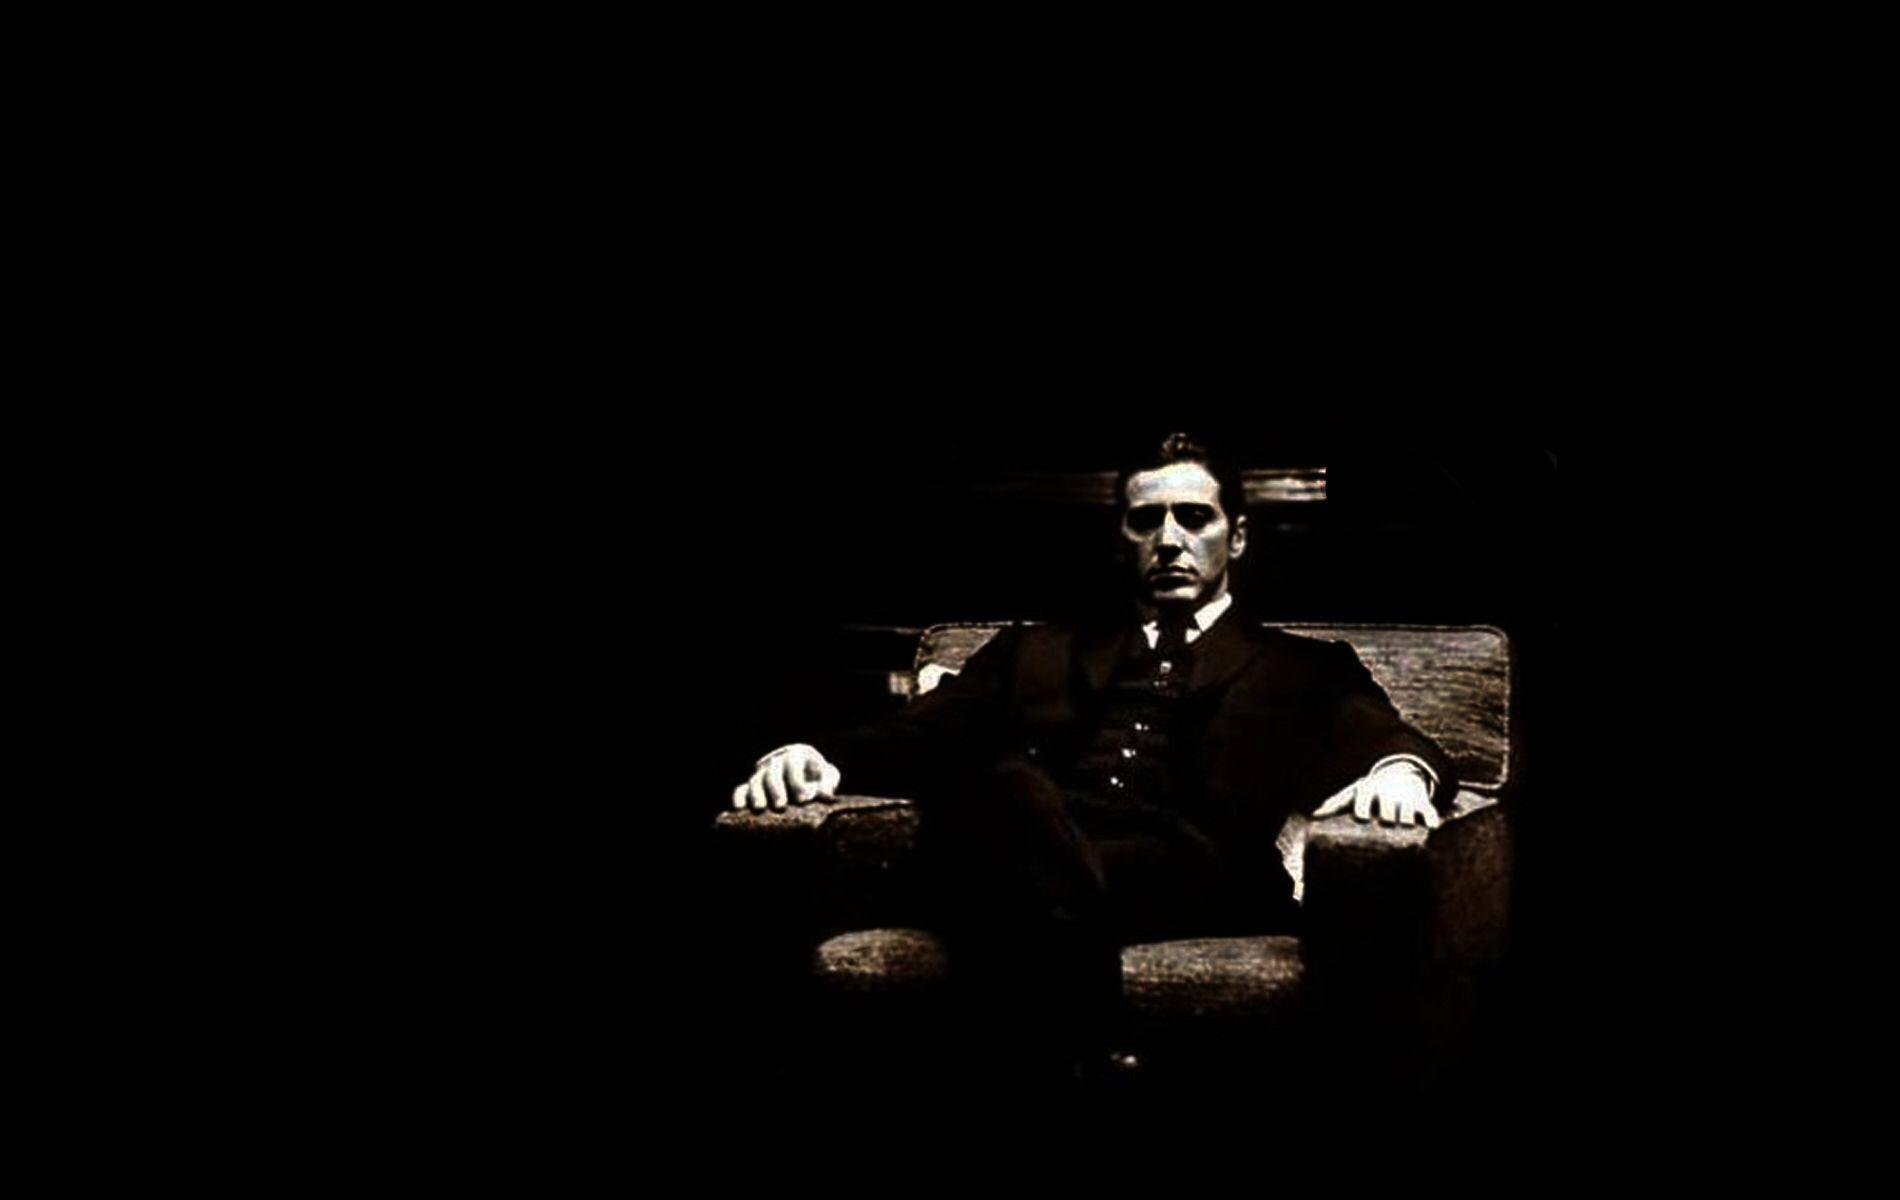 22 The Godfather Wallpapers | The Godfather Backgrounds